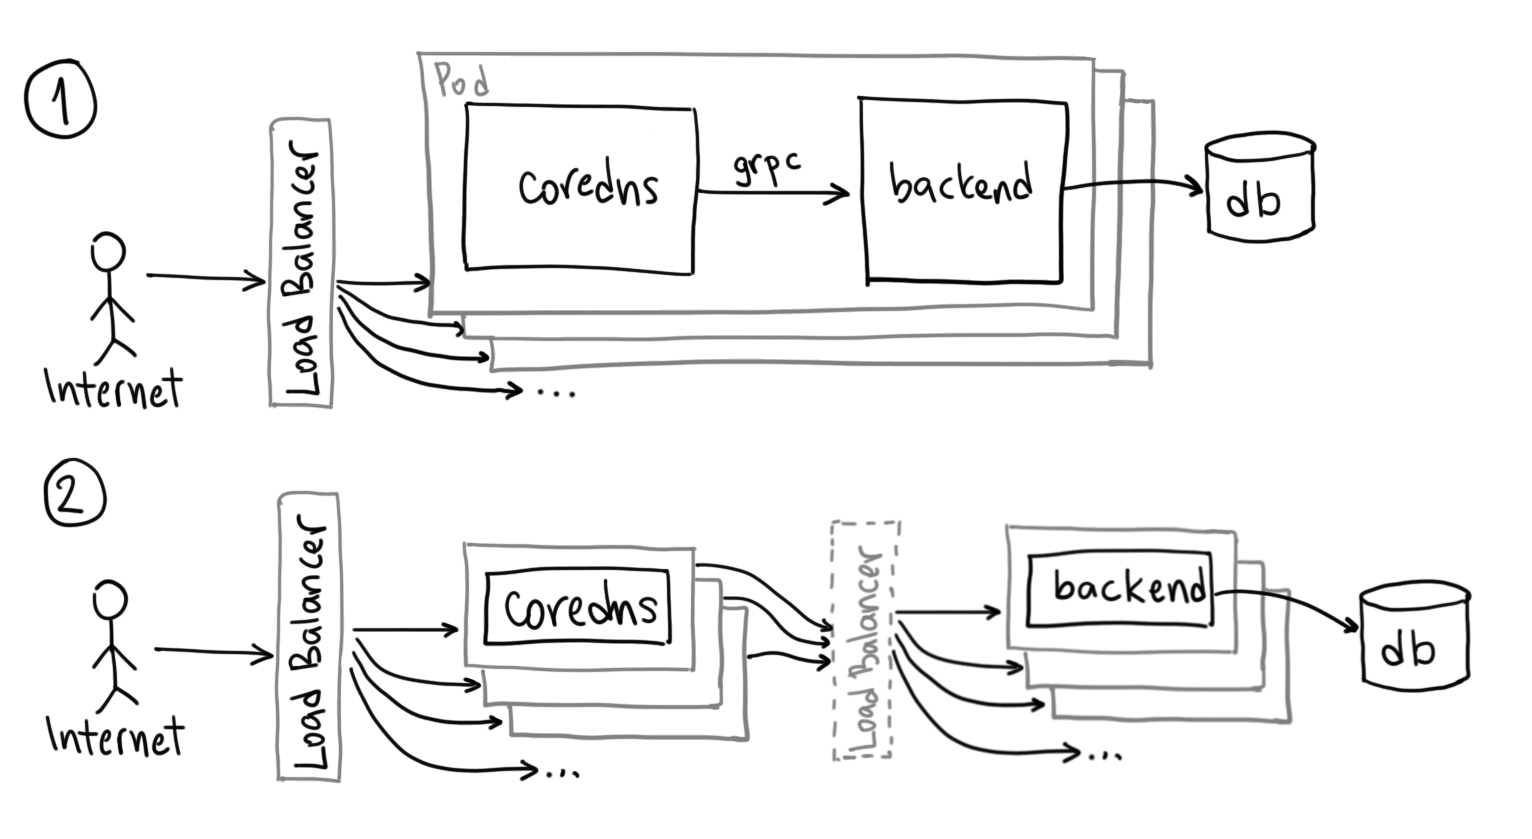 coredns deployment topology, click to expand